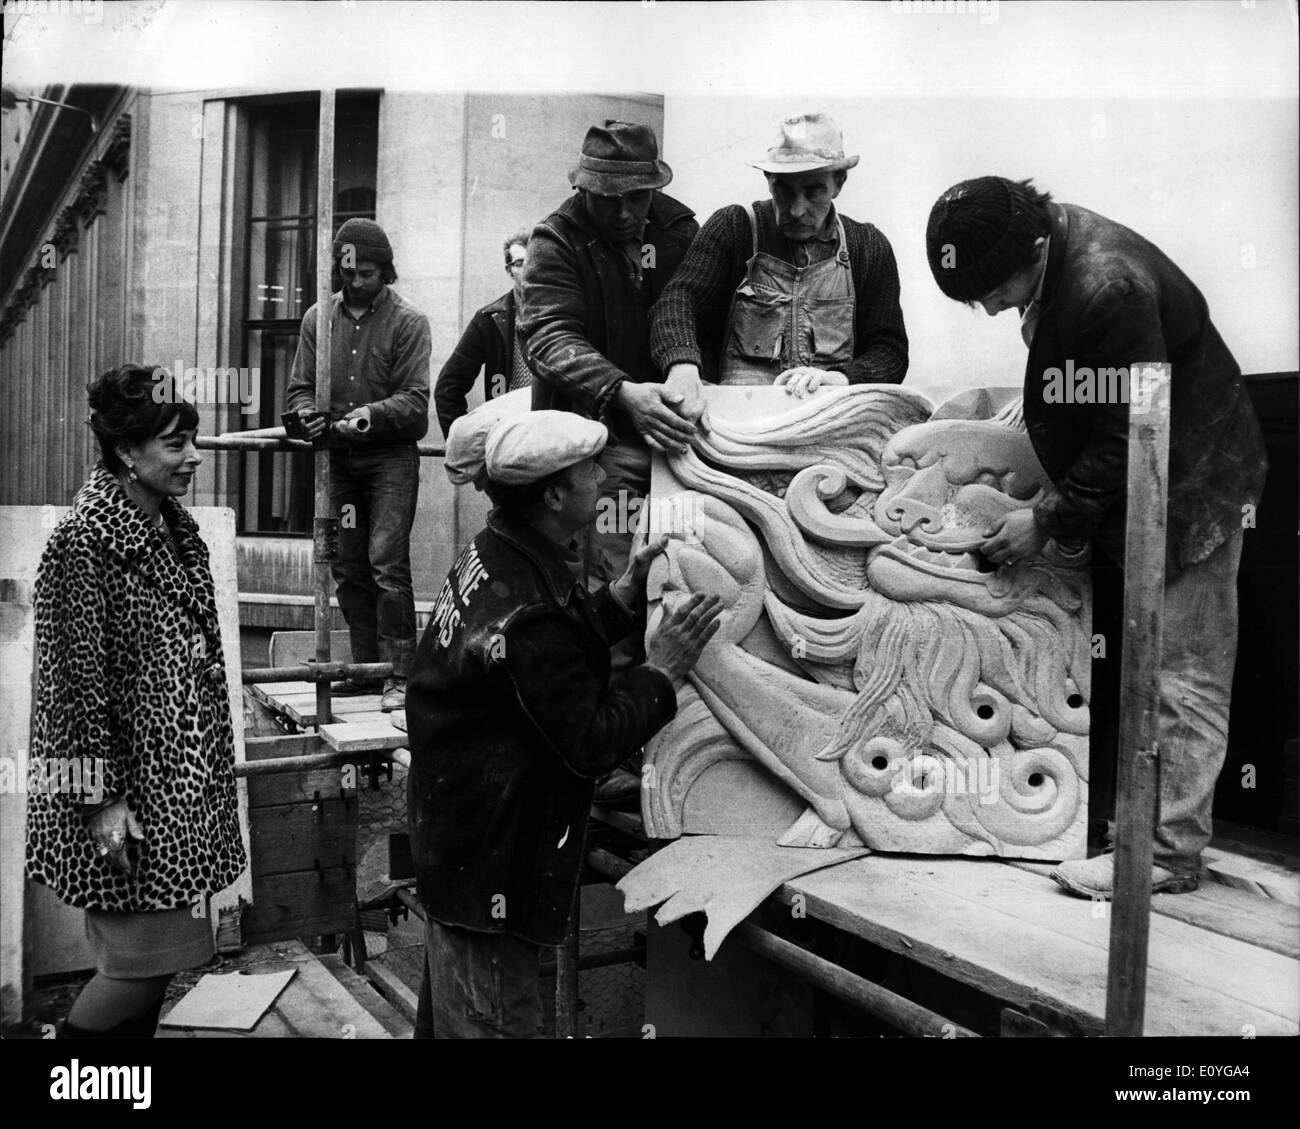 Apr. 04, 1970 - Sculptress Watchers Motifs Placed In Position: Sculptress Mitzi Cunliffe came from Brighton to watch her 6ft. square Scottish motifs being placed in position on the facade of the Scottish Life Assurance Company's new building in the City. Photo shows. Mitzi Cunliffe supervising the placing of the stone blocks today, on the faccade of the Scottish Life Assurance Company's building in the City, today. - Stock Image